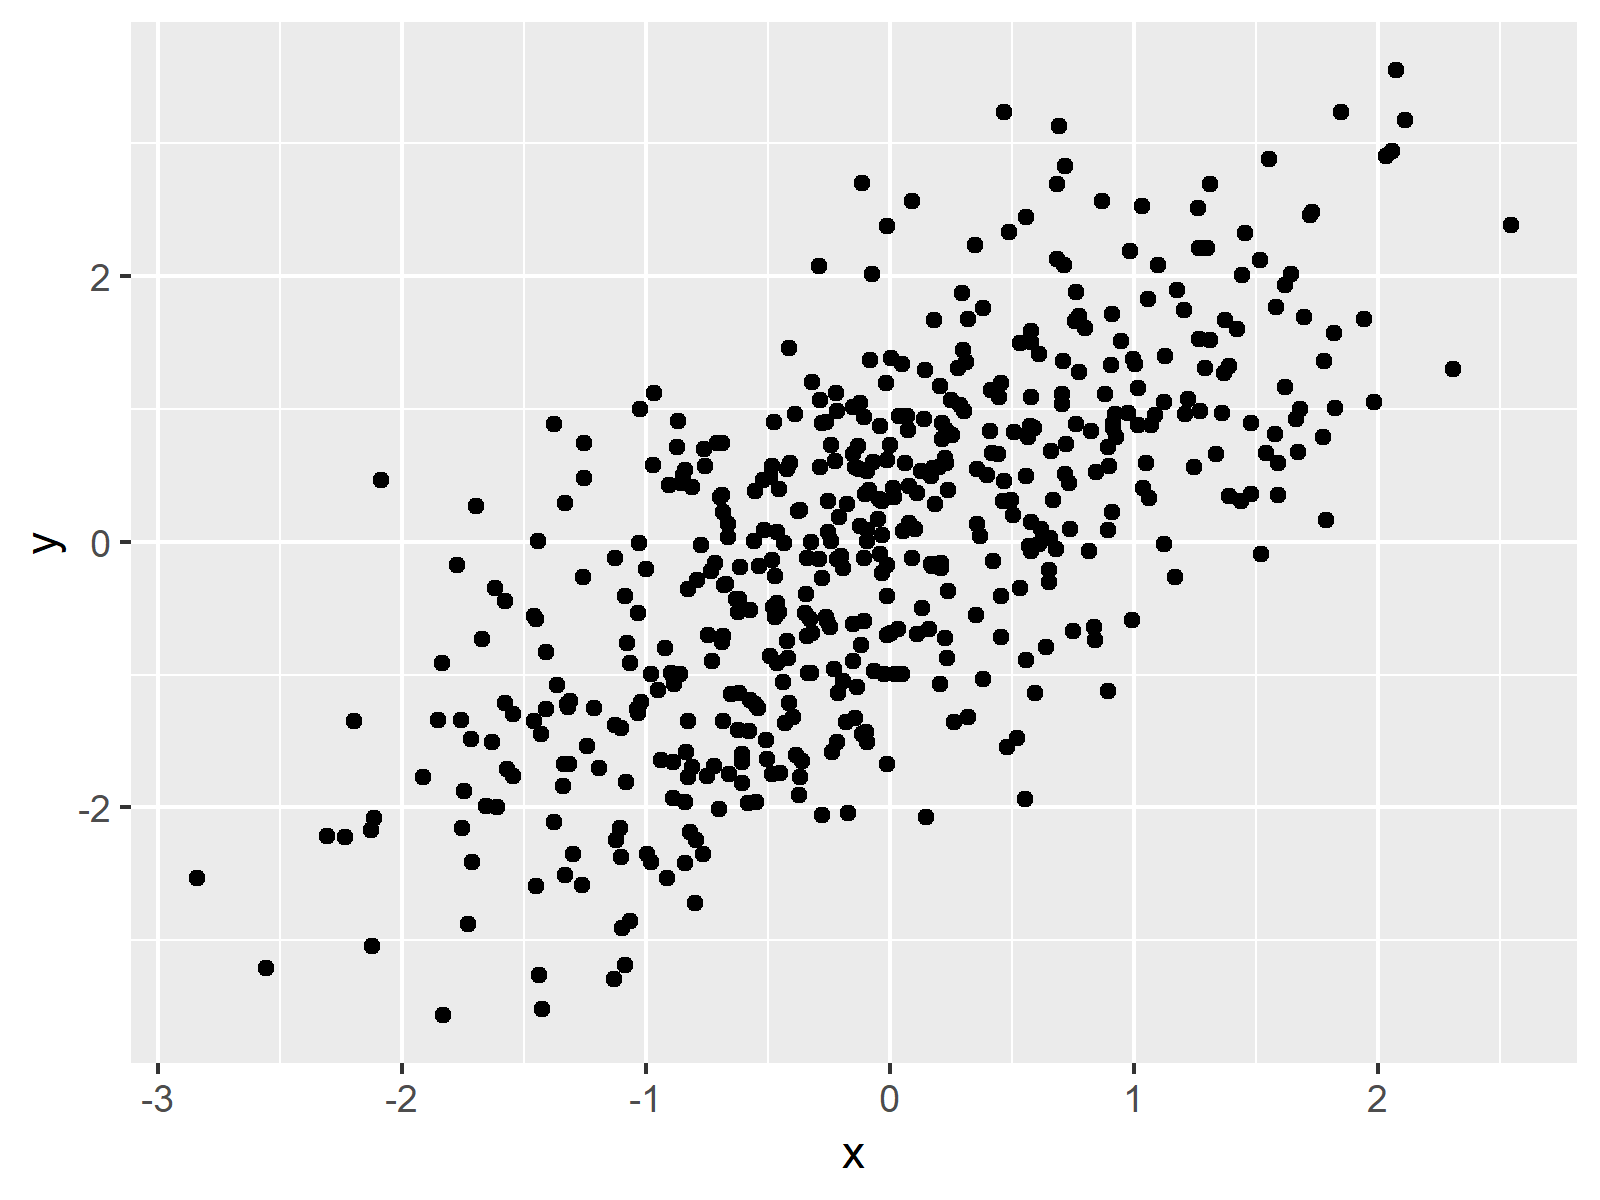 Scatterplot in ggplot2